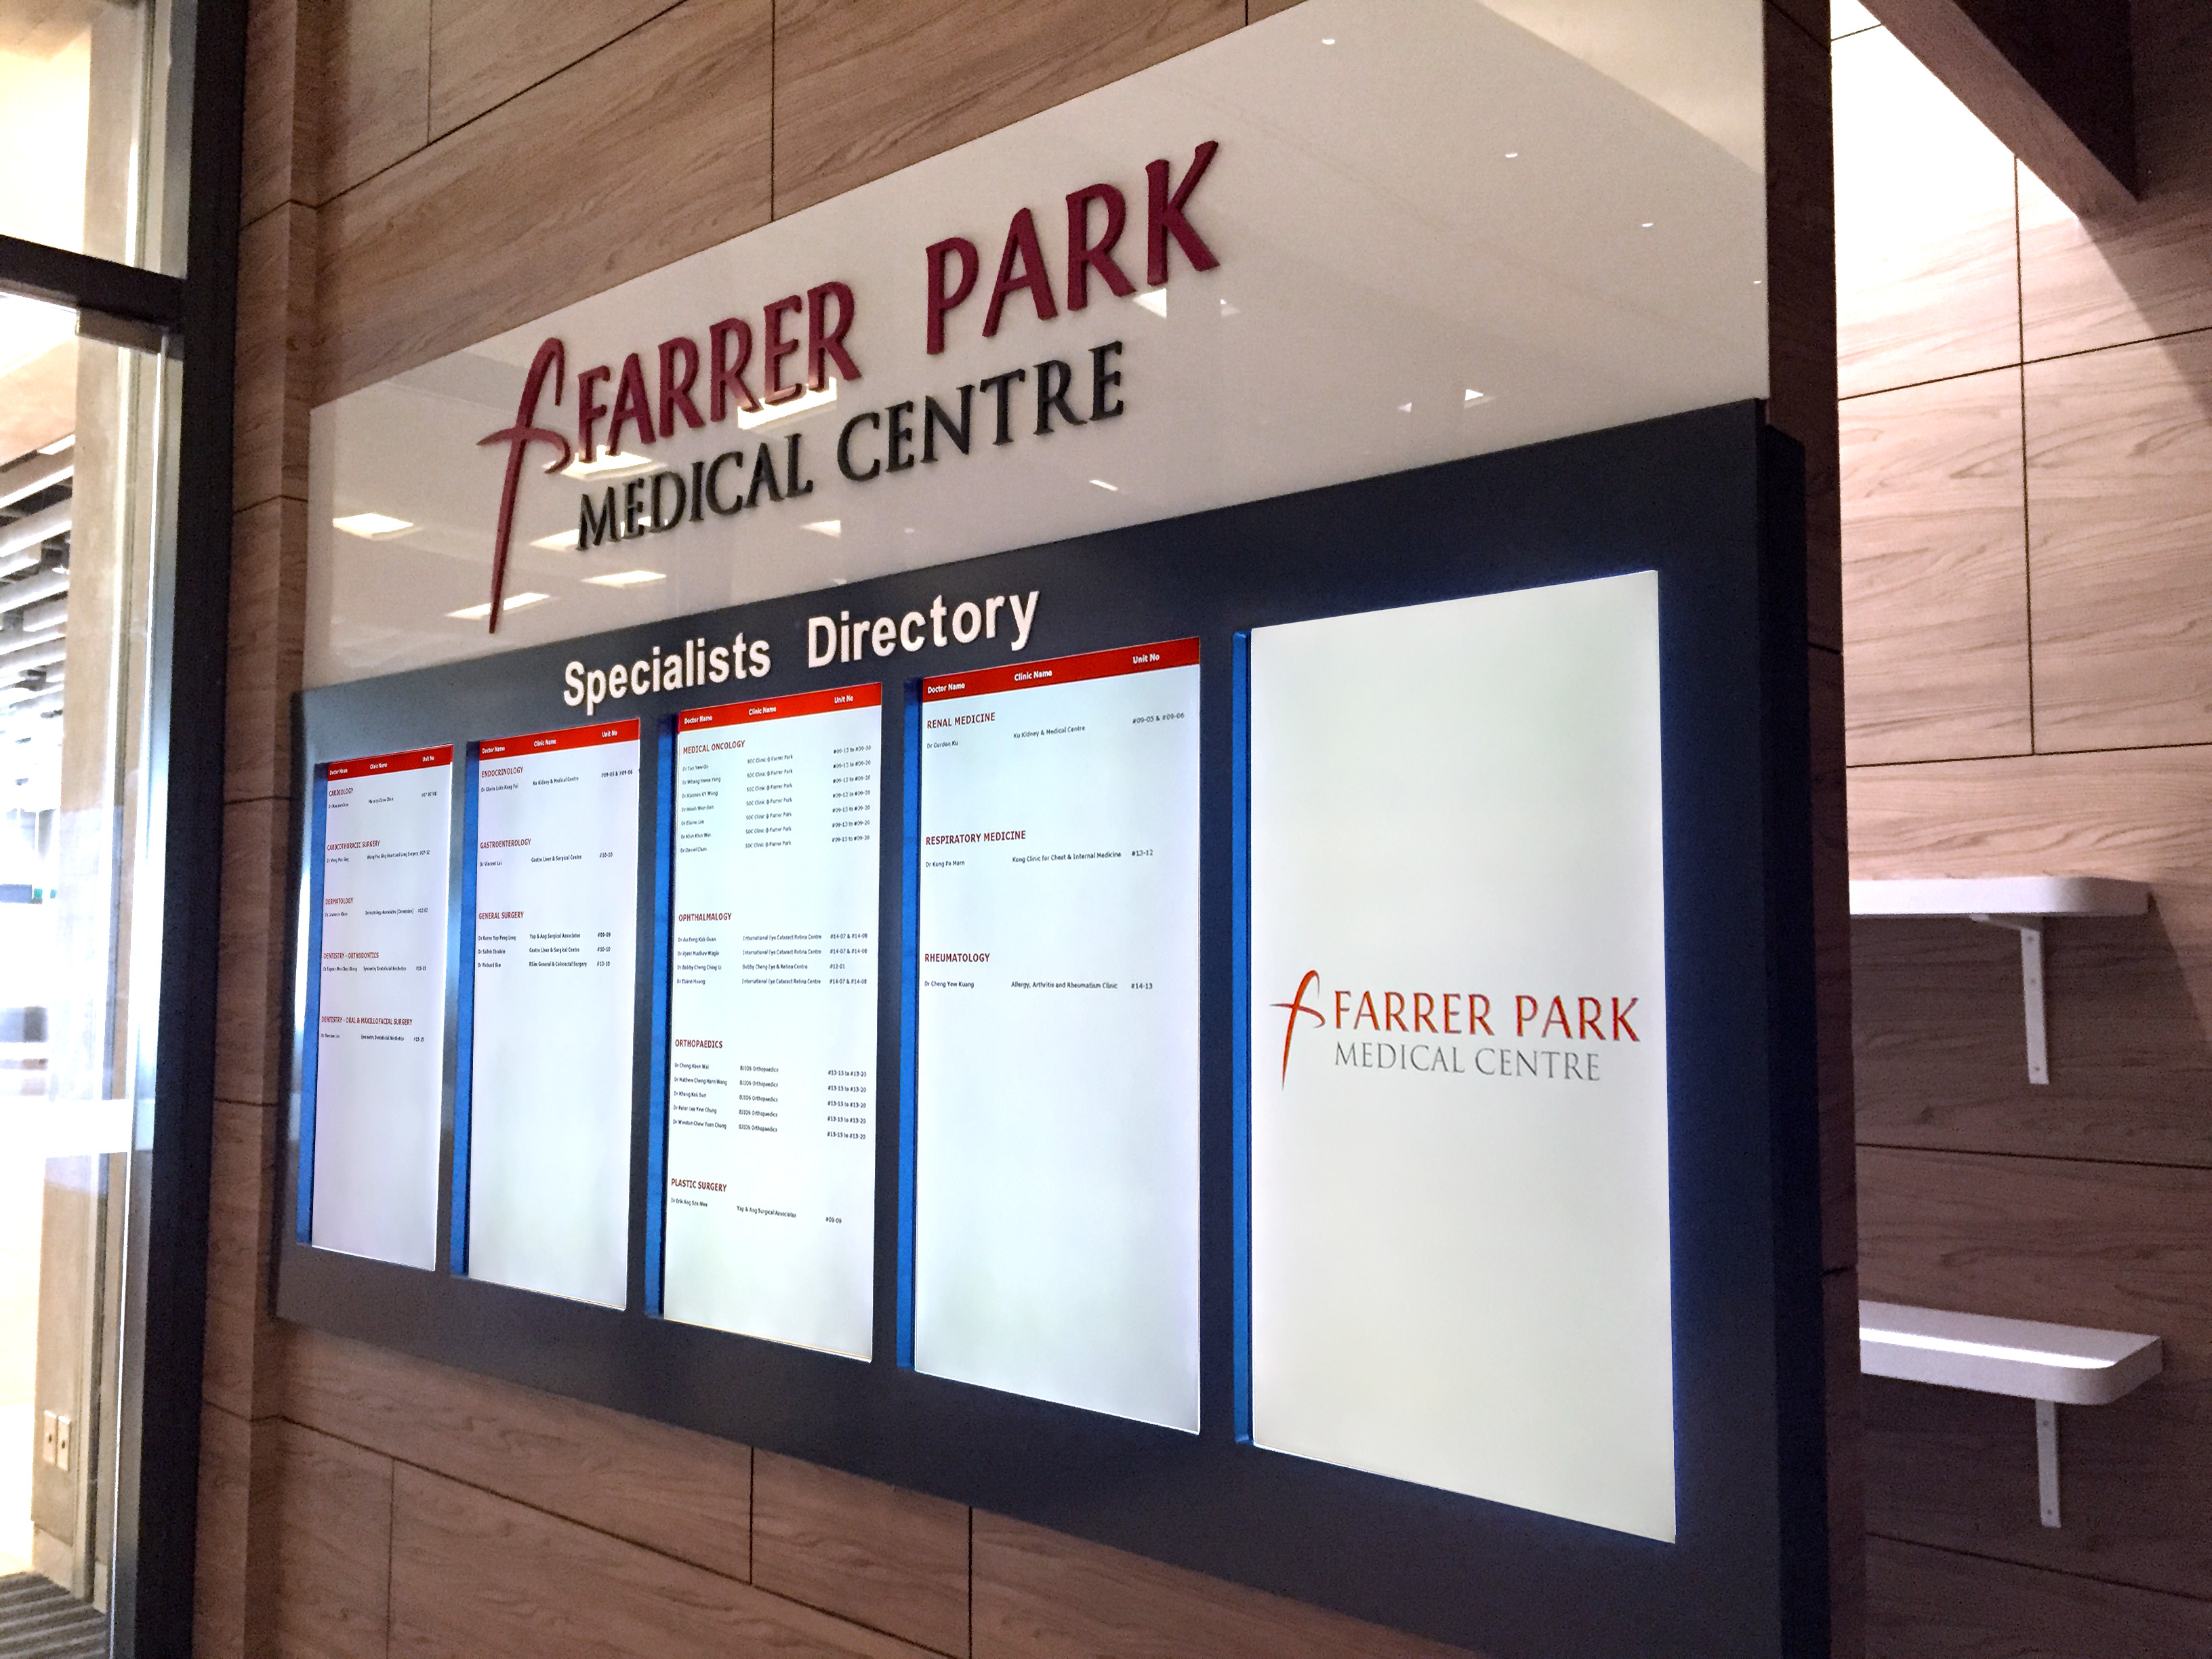 Farrer Park Medical Centre